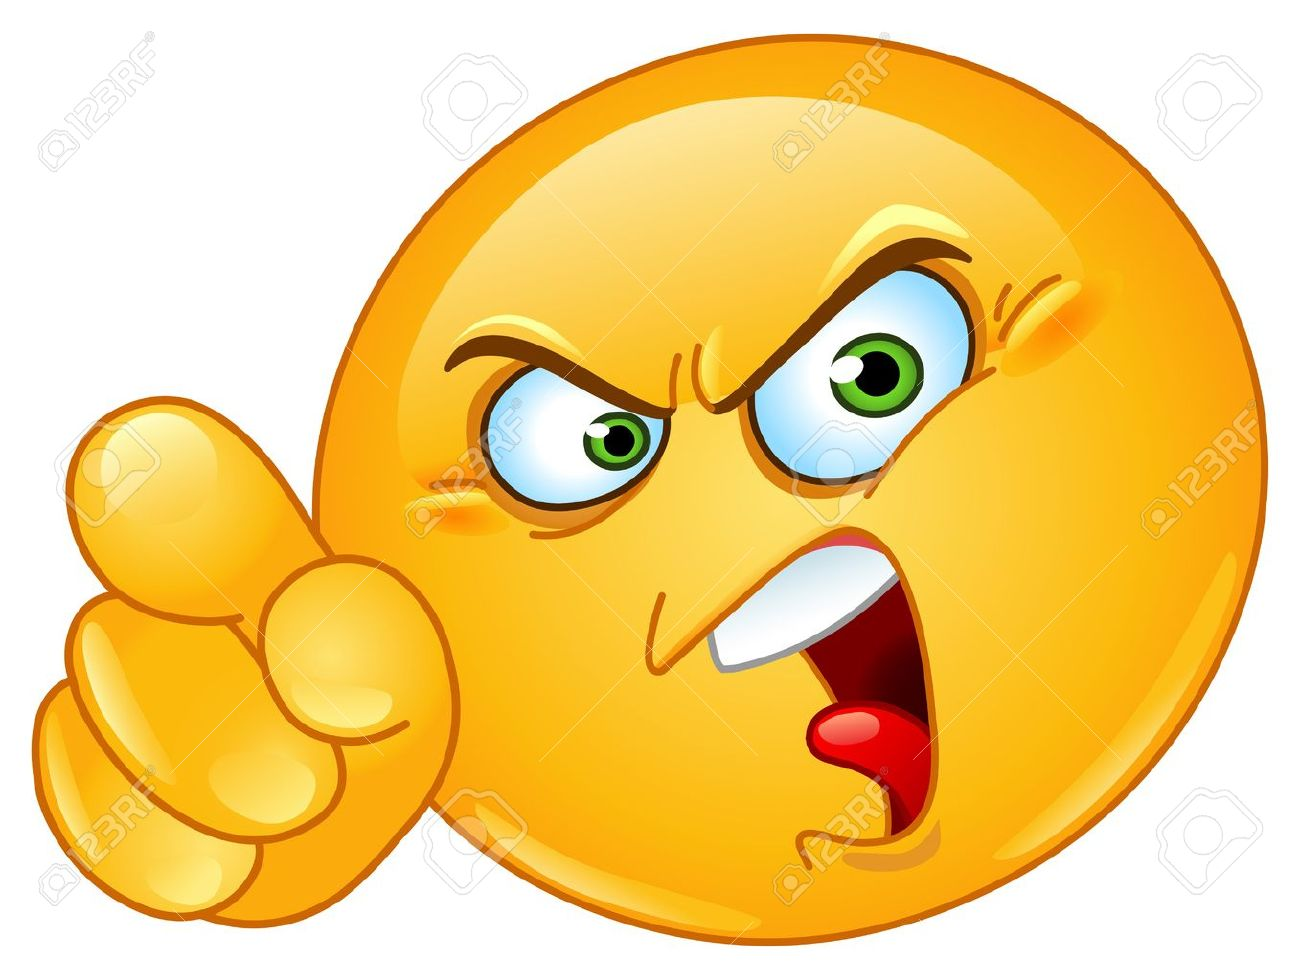 Angry emoticon pointing an accusing finger.